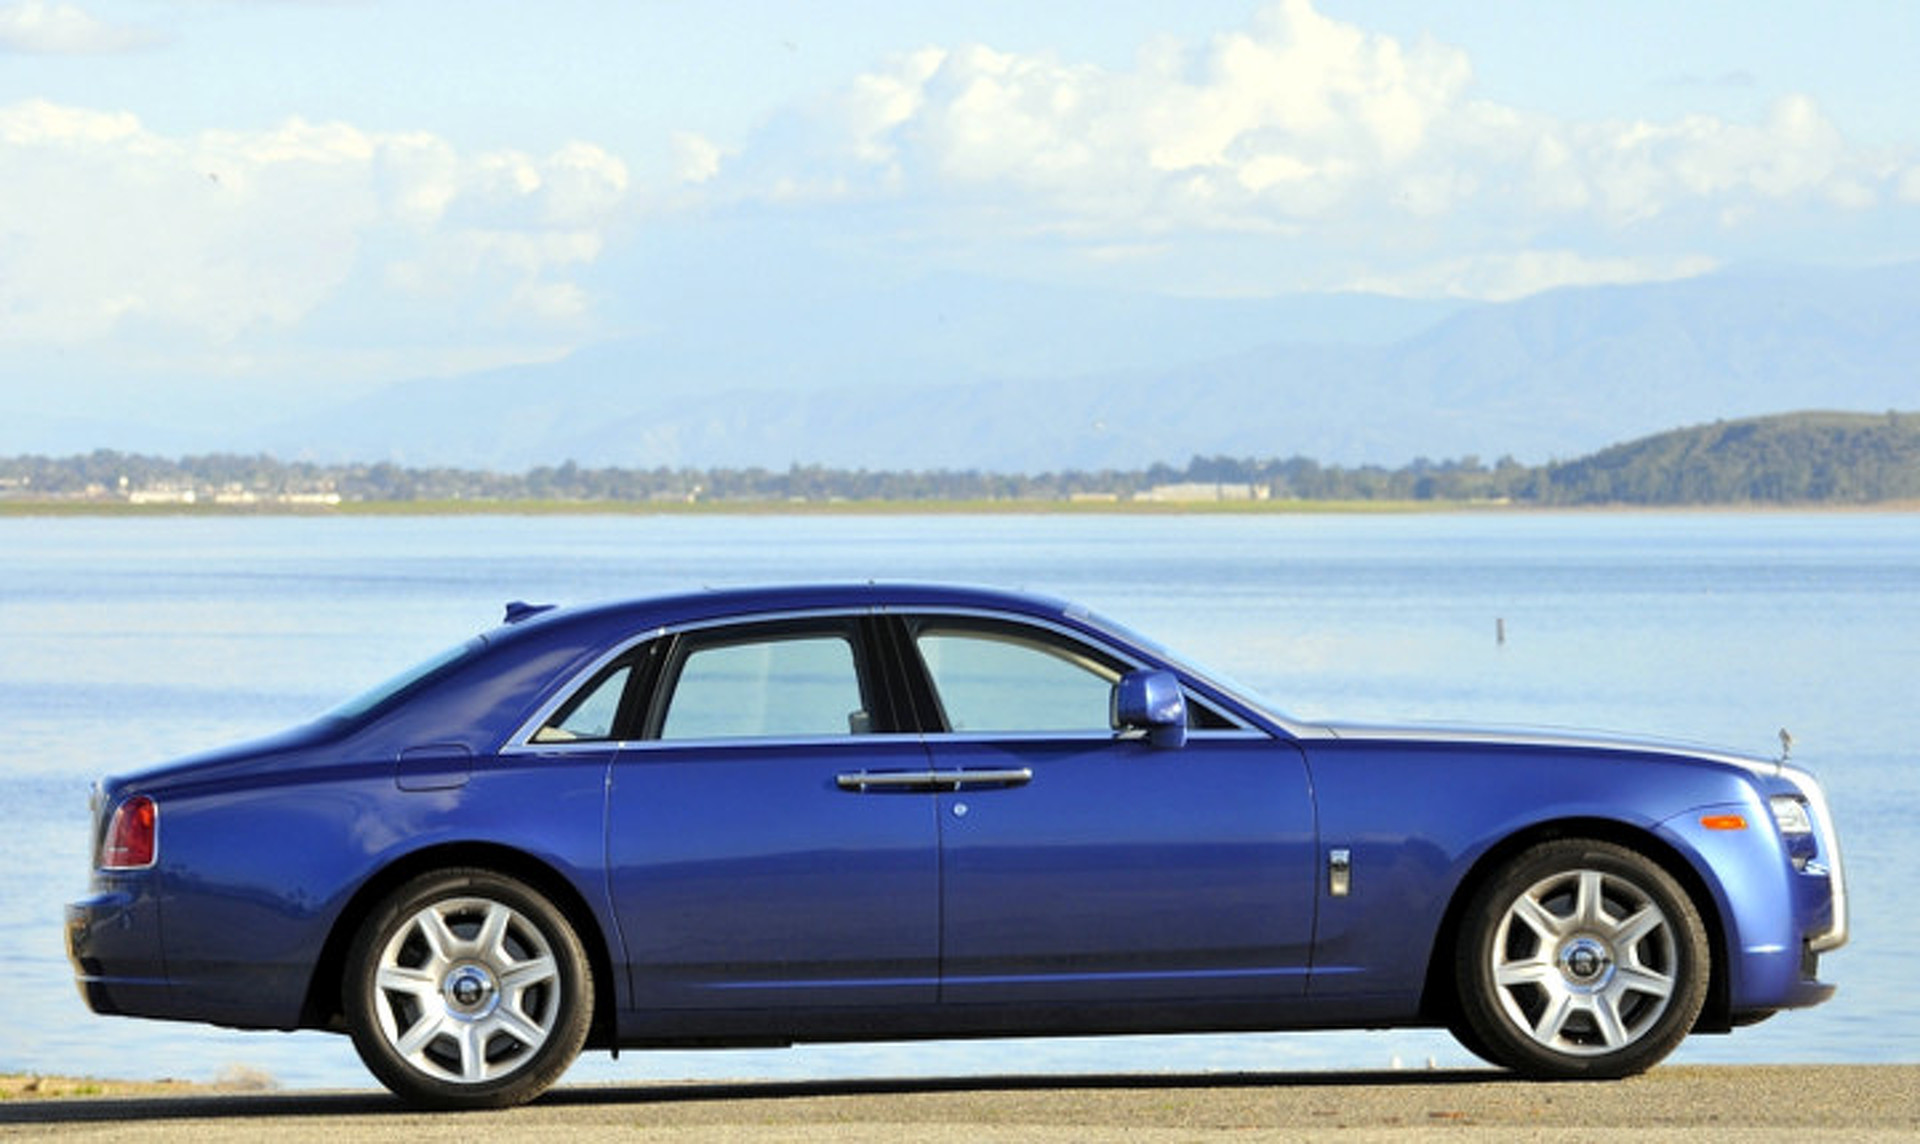 Rolls-Royce Issues a Recall...For a Single Car